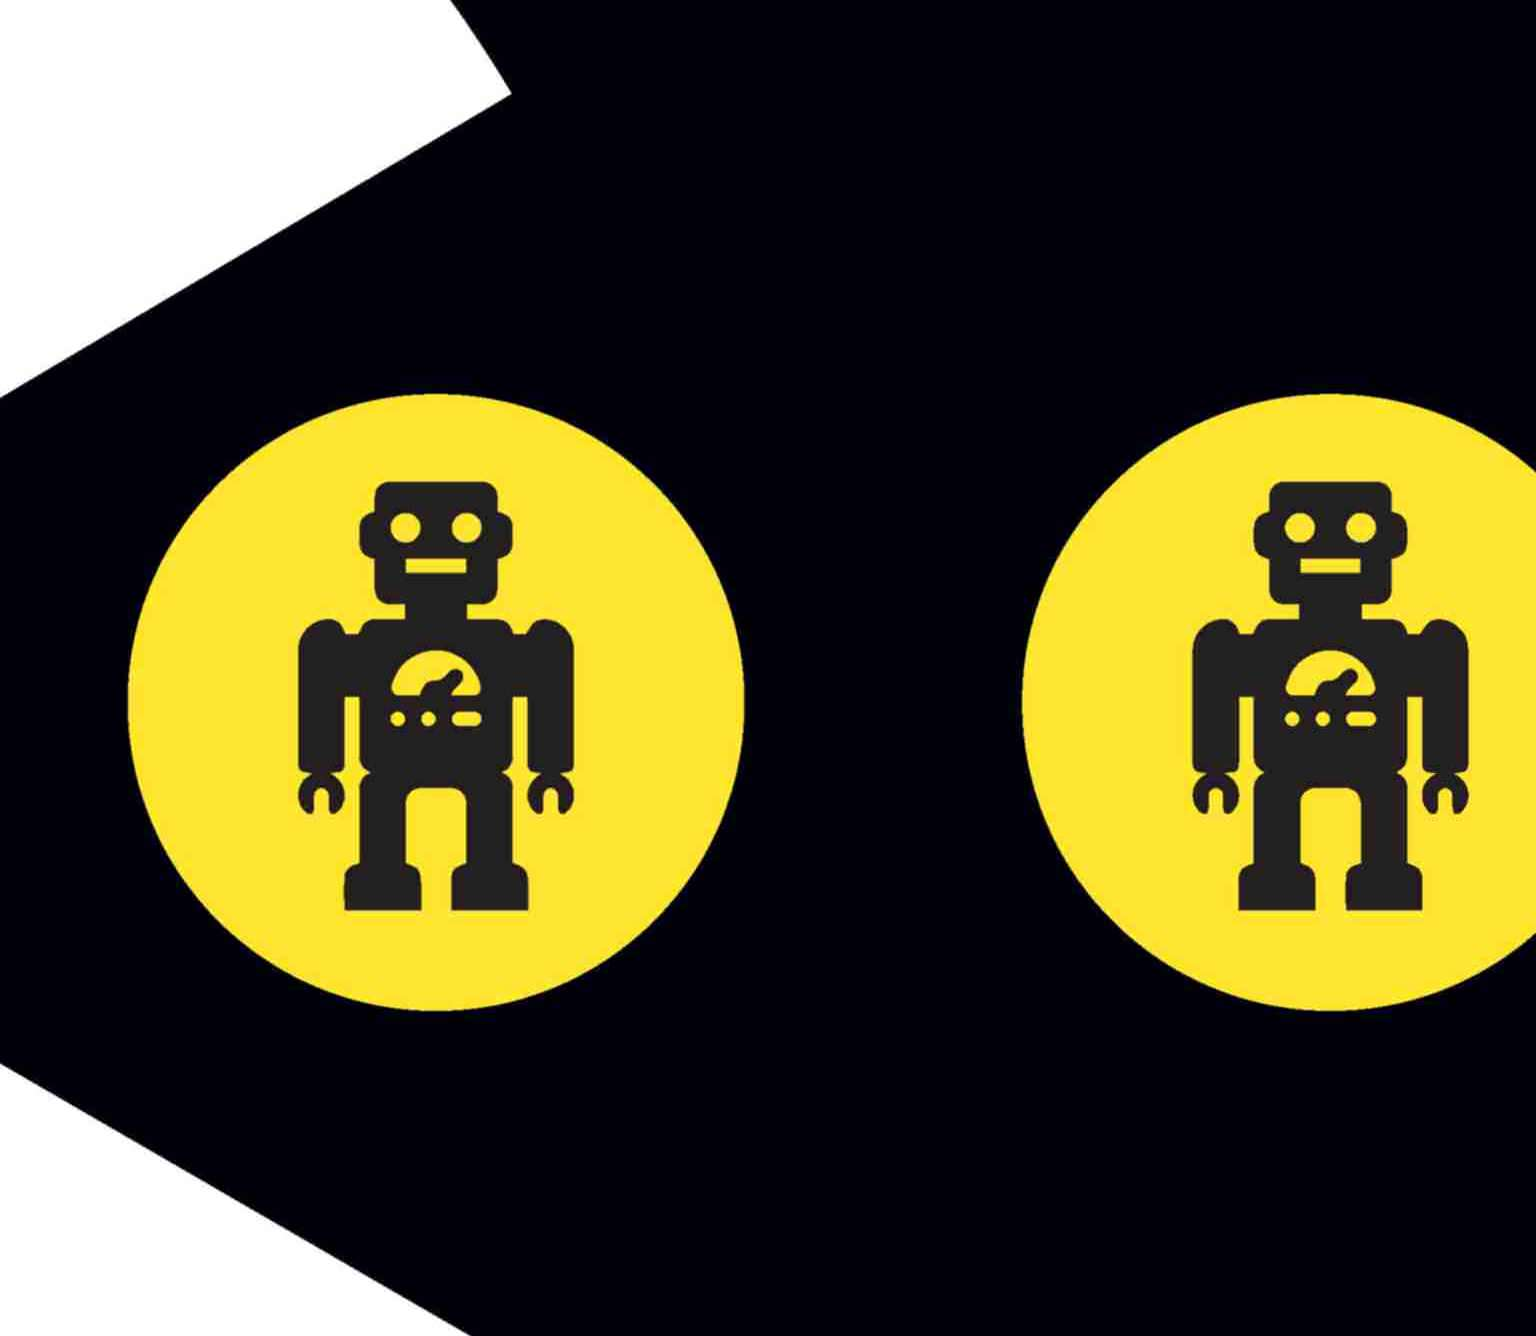 Will Uber Be The Next Robotic Superpower?